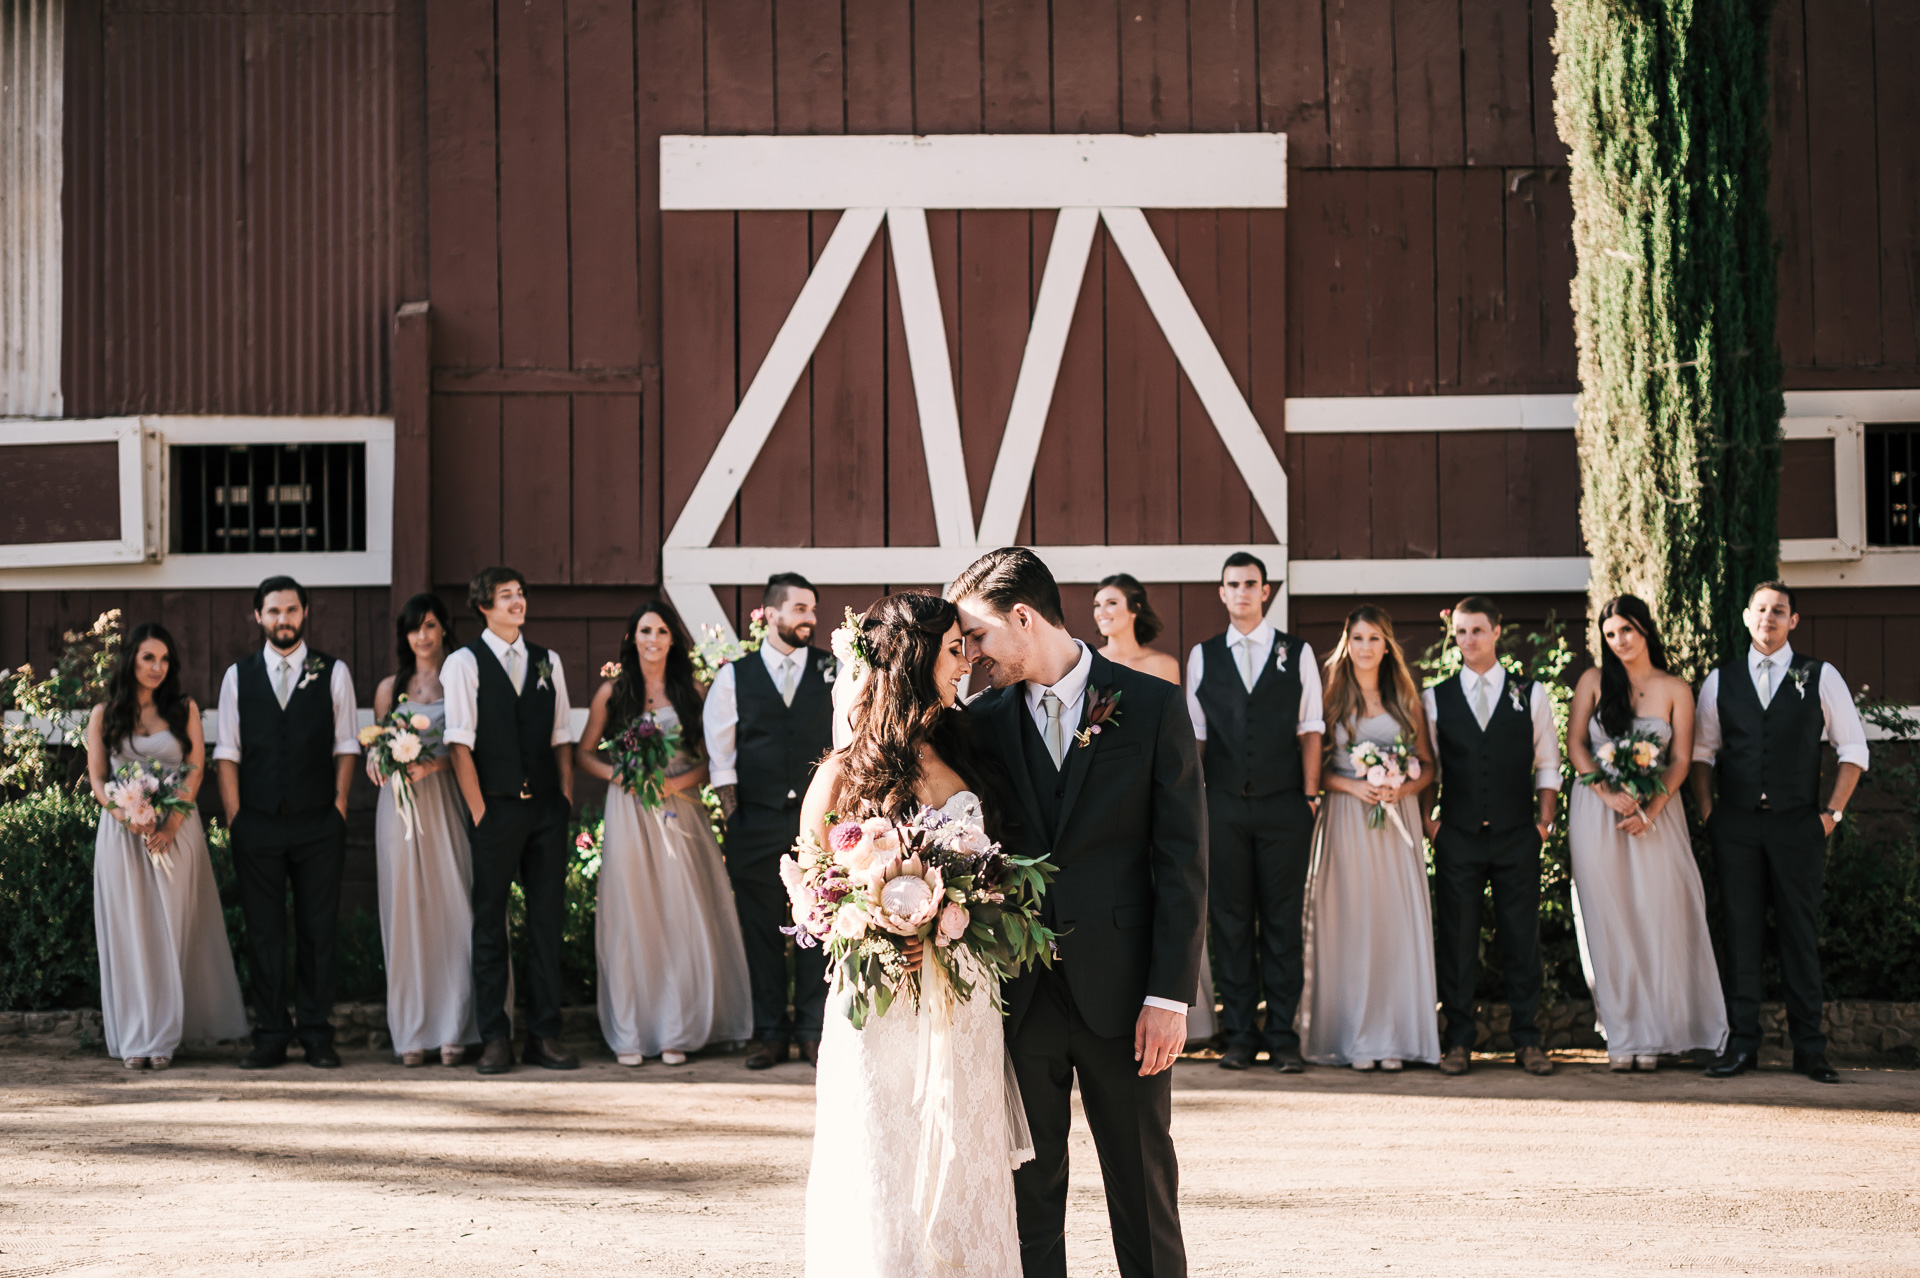 Rustic wedding photos at the Quail Haven Farms in Vista California.